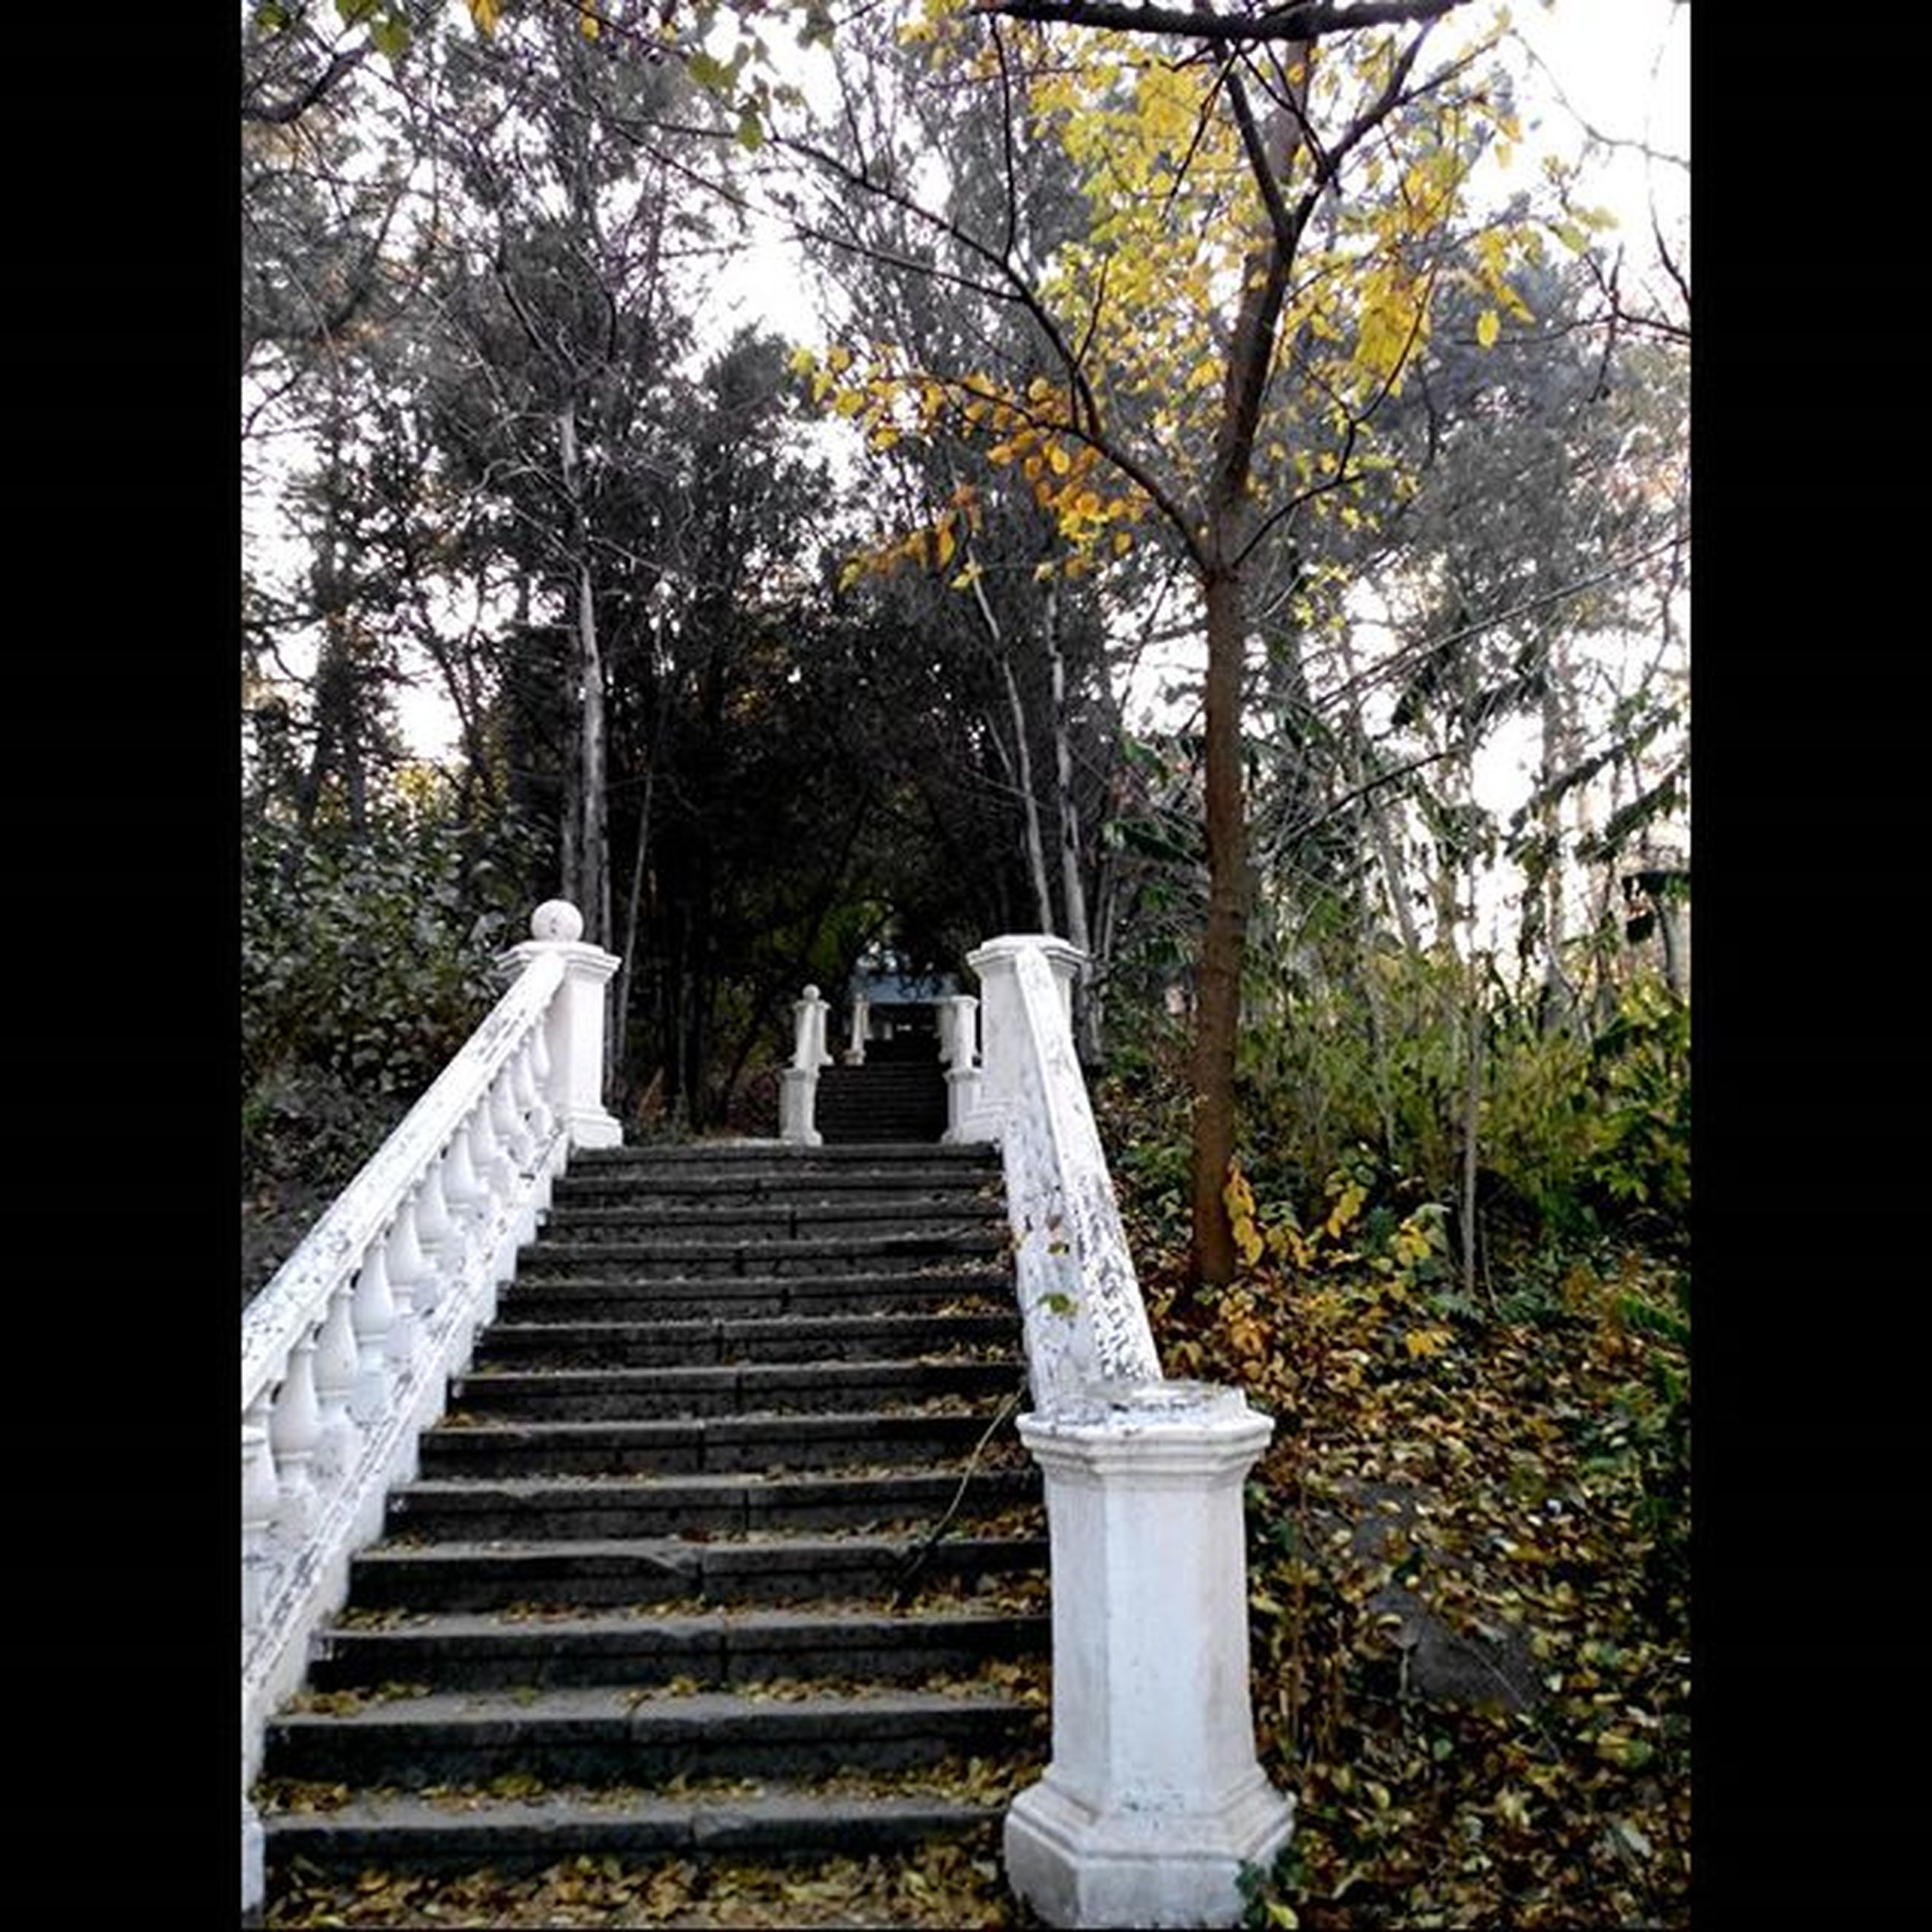 tree, built structure, steps, architecture, old, growth, building exterior, steps and staircases, staircase, day, railing, no people, auto post production filter, transfer print, stone material, tree trunk, forest, outdoors, branch, plant